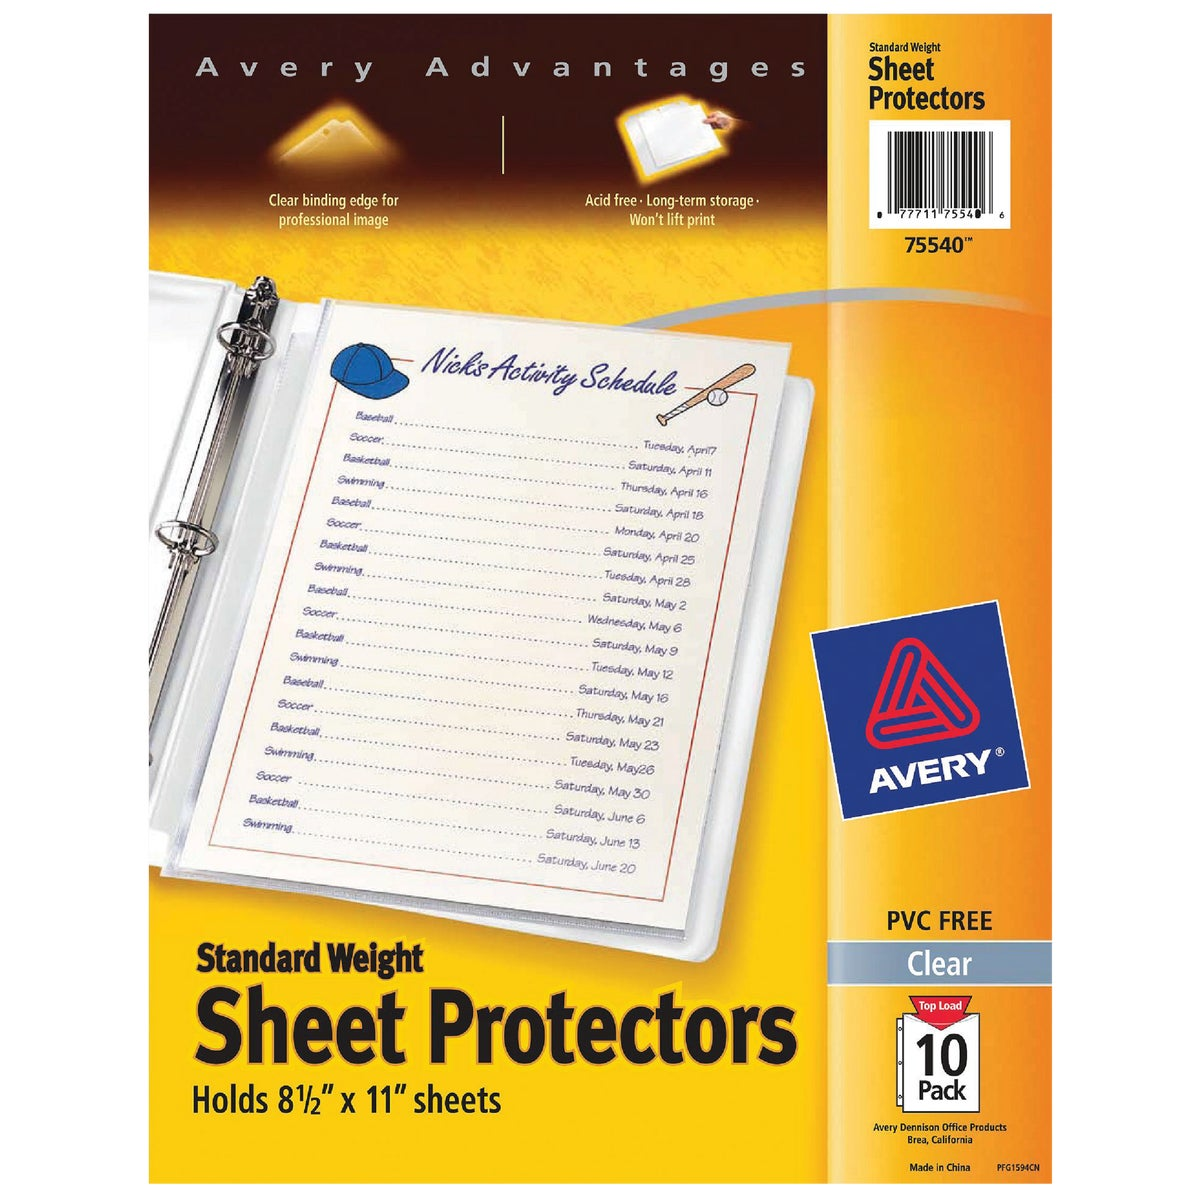 10PK SHEET PROTECTOR - 75540 by Avery Dennison